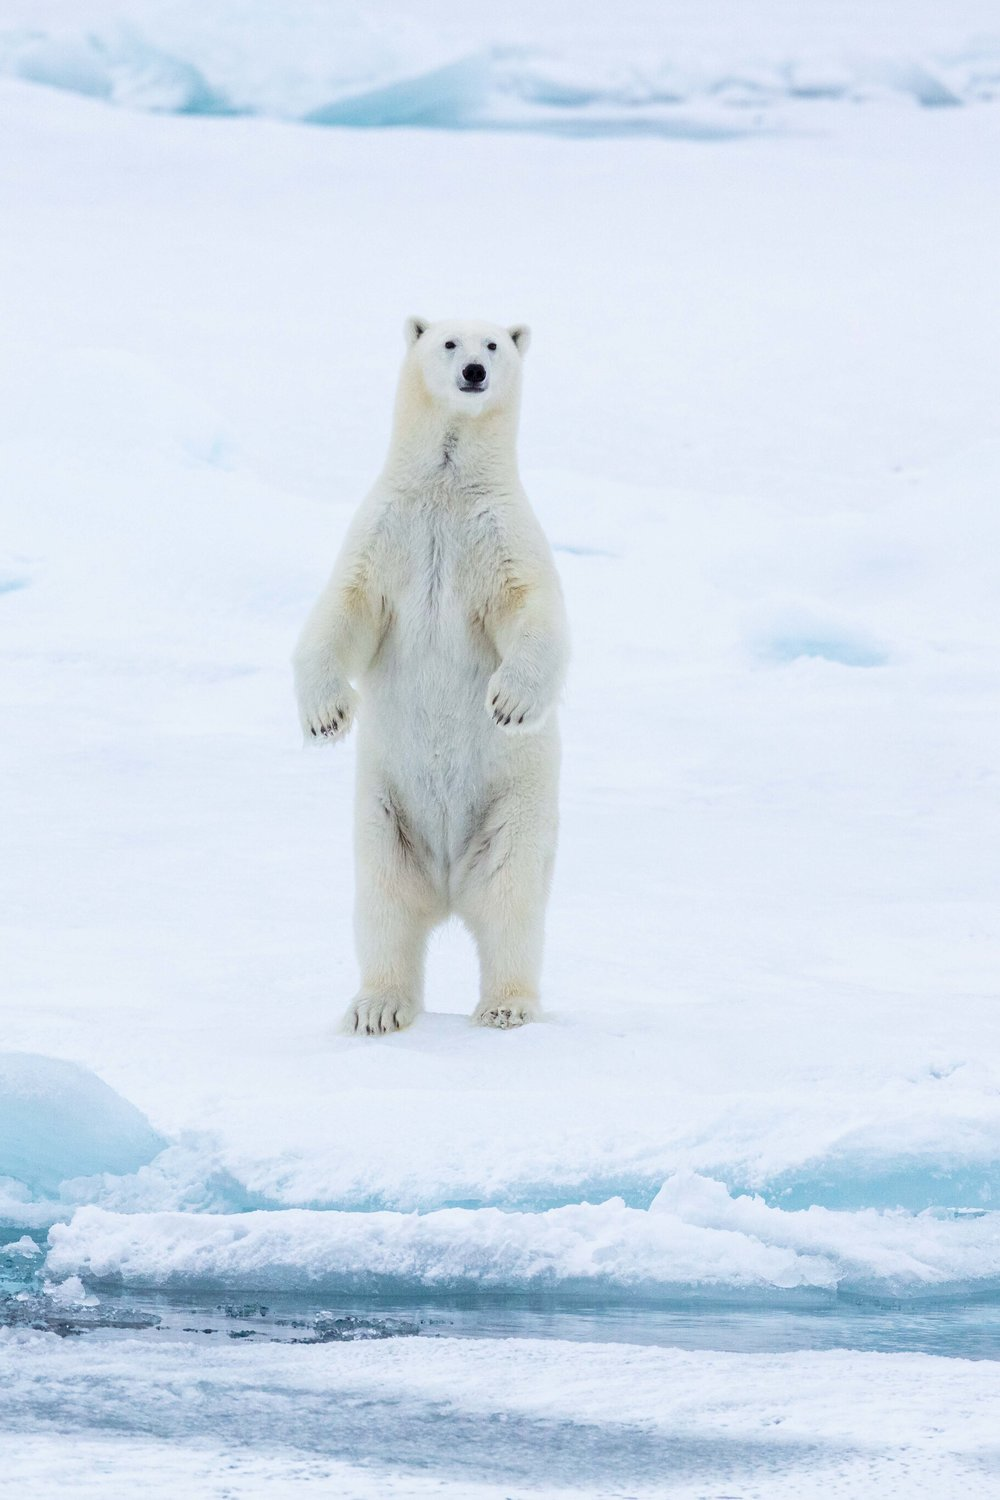 A large female polar bear stands on her hind legs, curiously observing the ship far in the distance.  Weighing as much as 500-600 lbs, female polar bears look like giants on the ice, but when standing at over 7 feet tall, their size and strength is even more humbling.  Though this bear was curious about the ship for a brief moment, she quickly returned to her normal hunting behaviors and was calm as if the ship were not there, making it possible to observe the bear on her own terms without disrupting her way of life. In the arctic, just as anywhere else, it is crucial to ensure that the presence of people does not impact wildlife or leave a lasting footprint. The M/V Plancius and its crew from Oceanwide are governed by an organization called AECO that sets guidelines and ethical standards for ensuring encounters like this one lead to a positive impact for the species of the arctic, not a negative one.